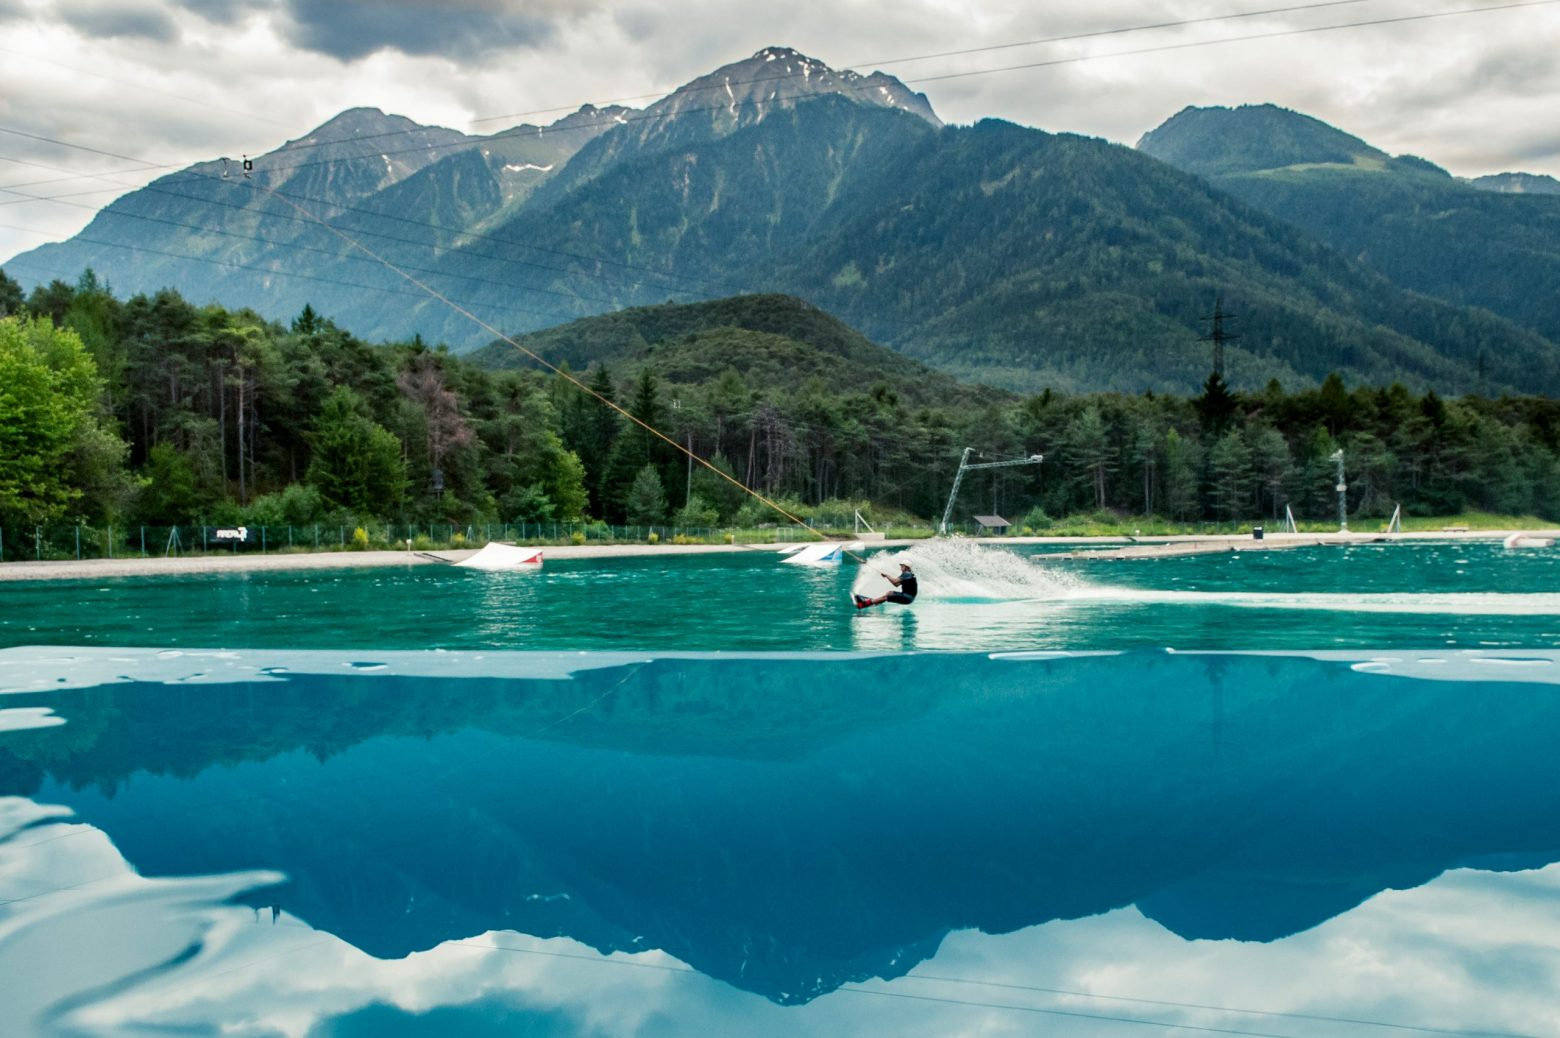 Wakeboarding Pros at AREA 47 in Tyrol Austria